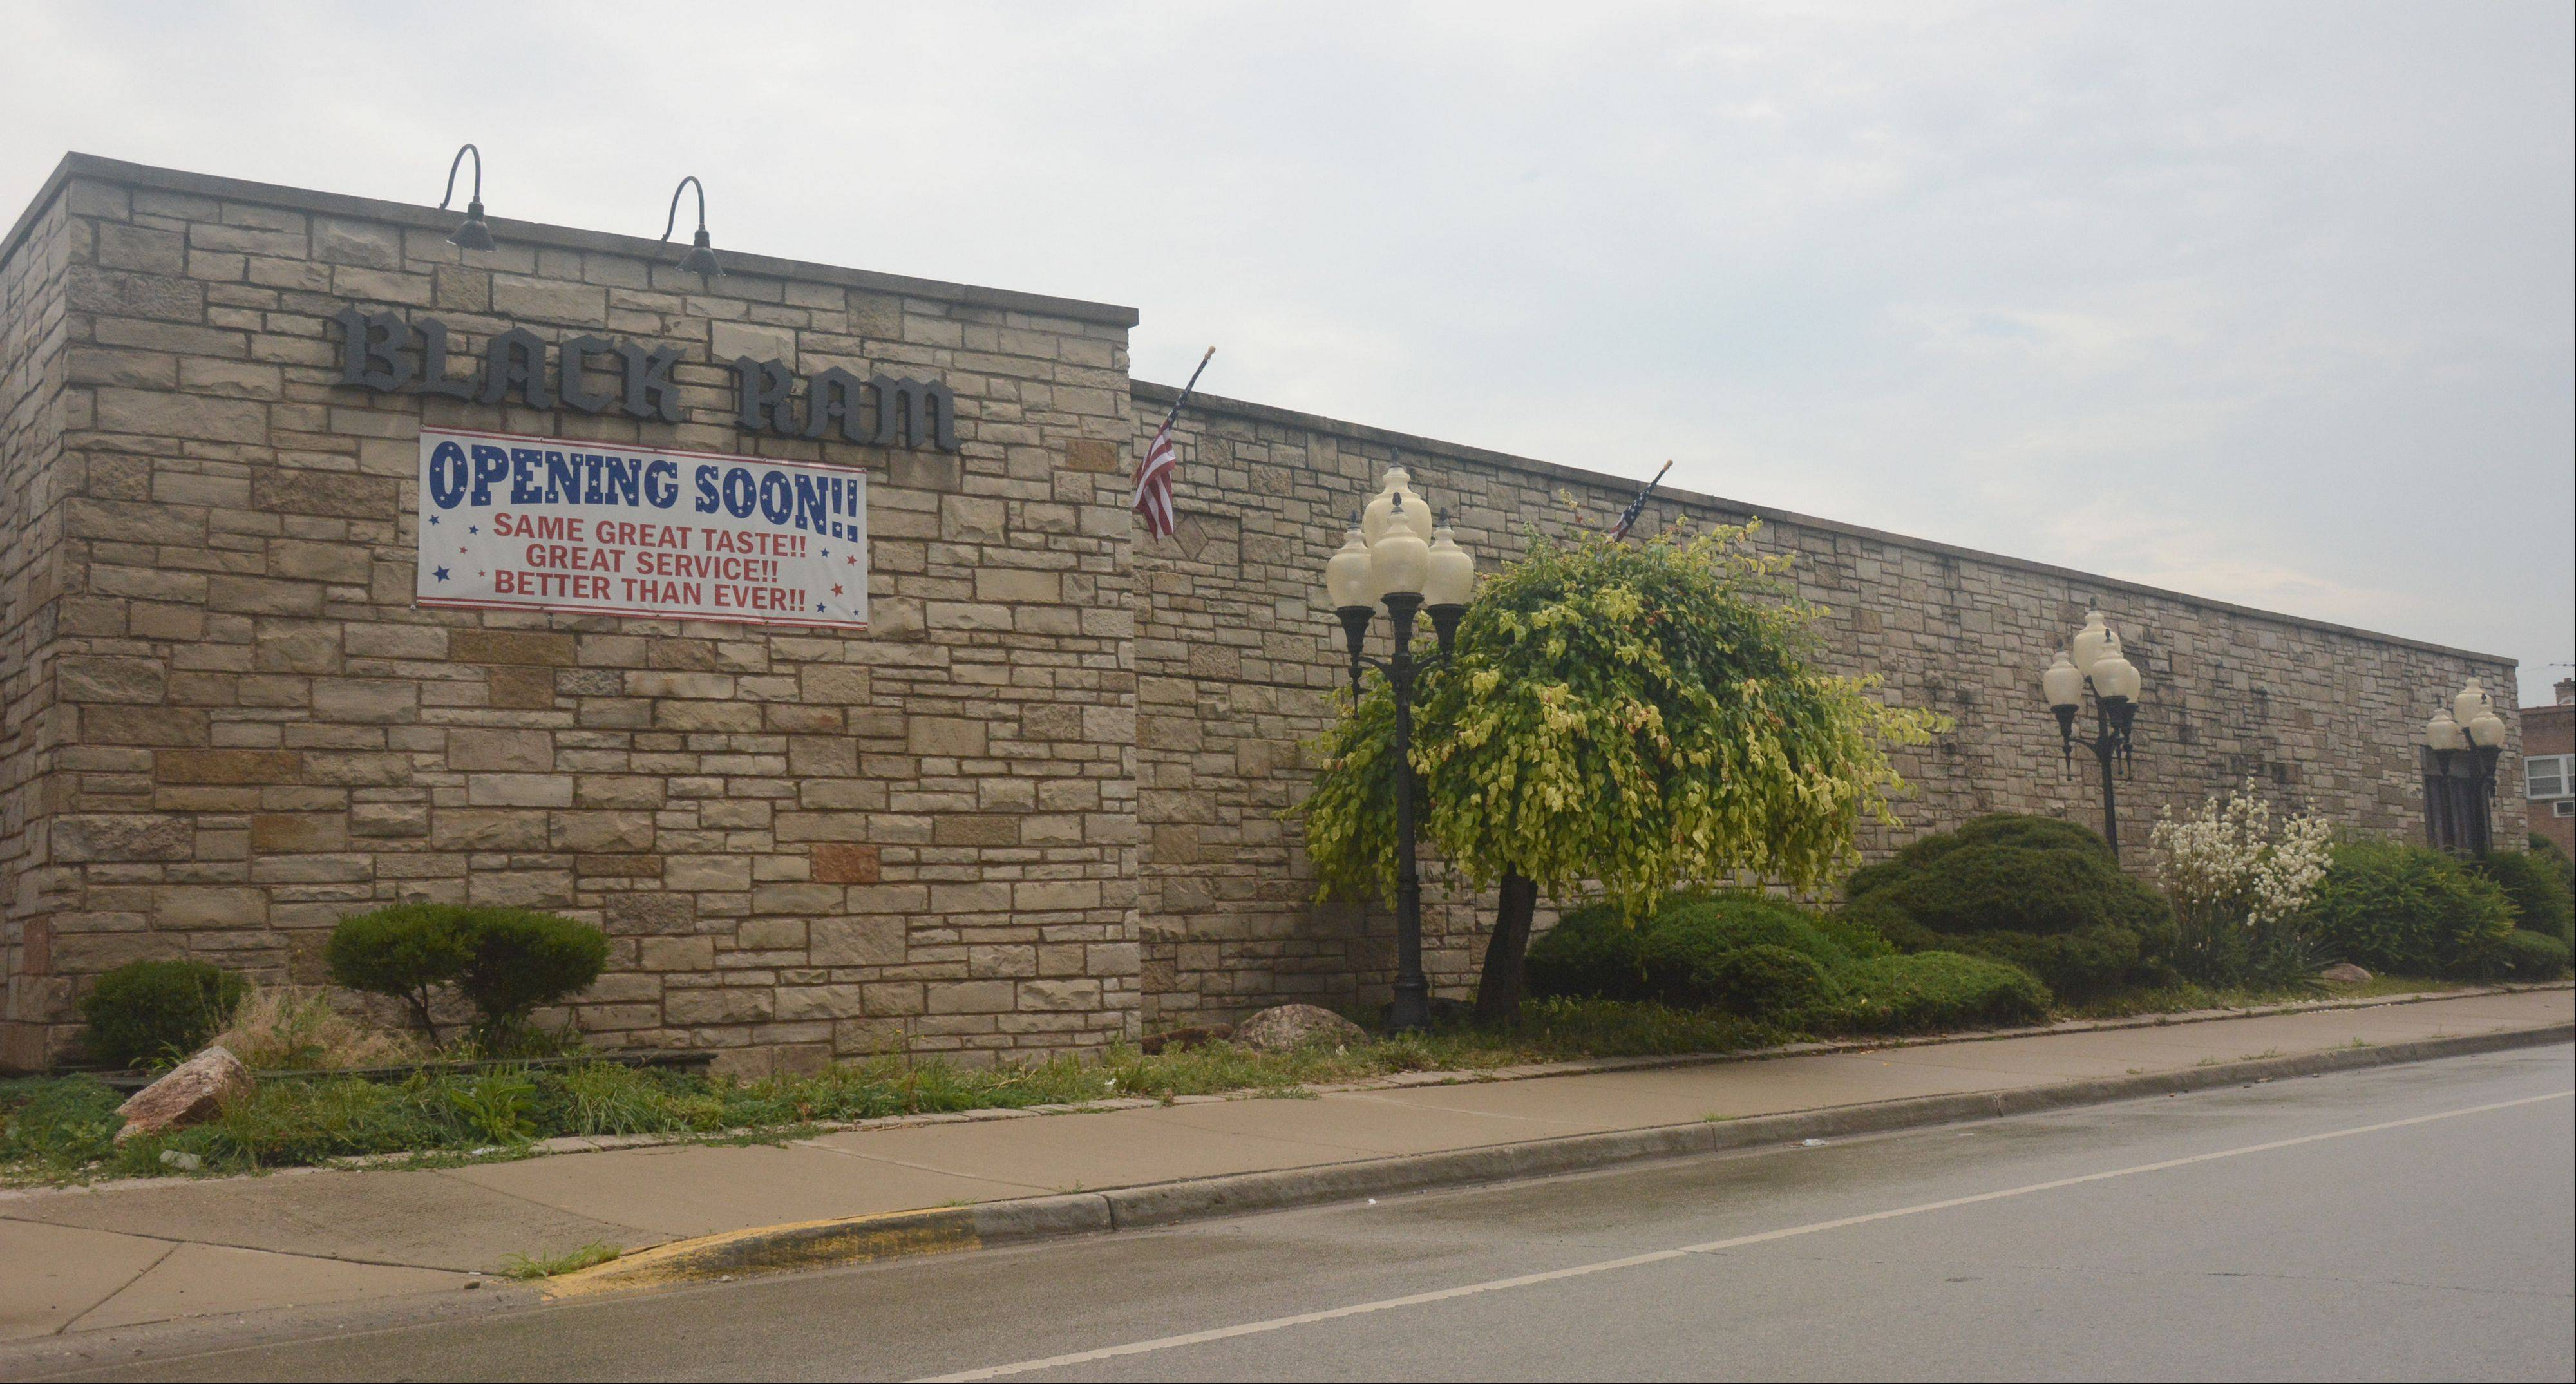 The Black Ram Restaurant in Des Plaines is reopening next month under new management. The longtime dining staple closed in 2009 after the state suspended its liquor license for failing to pay taxes.